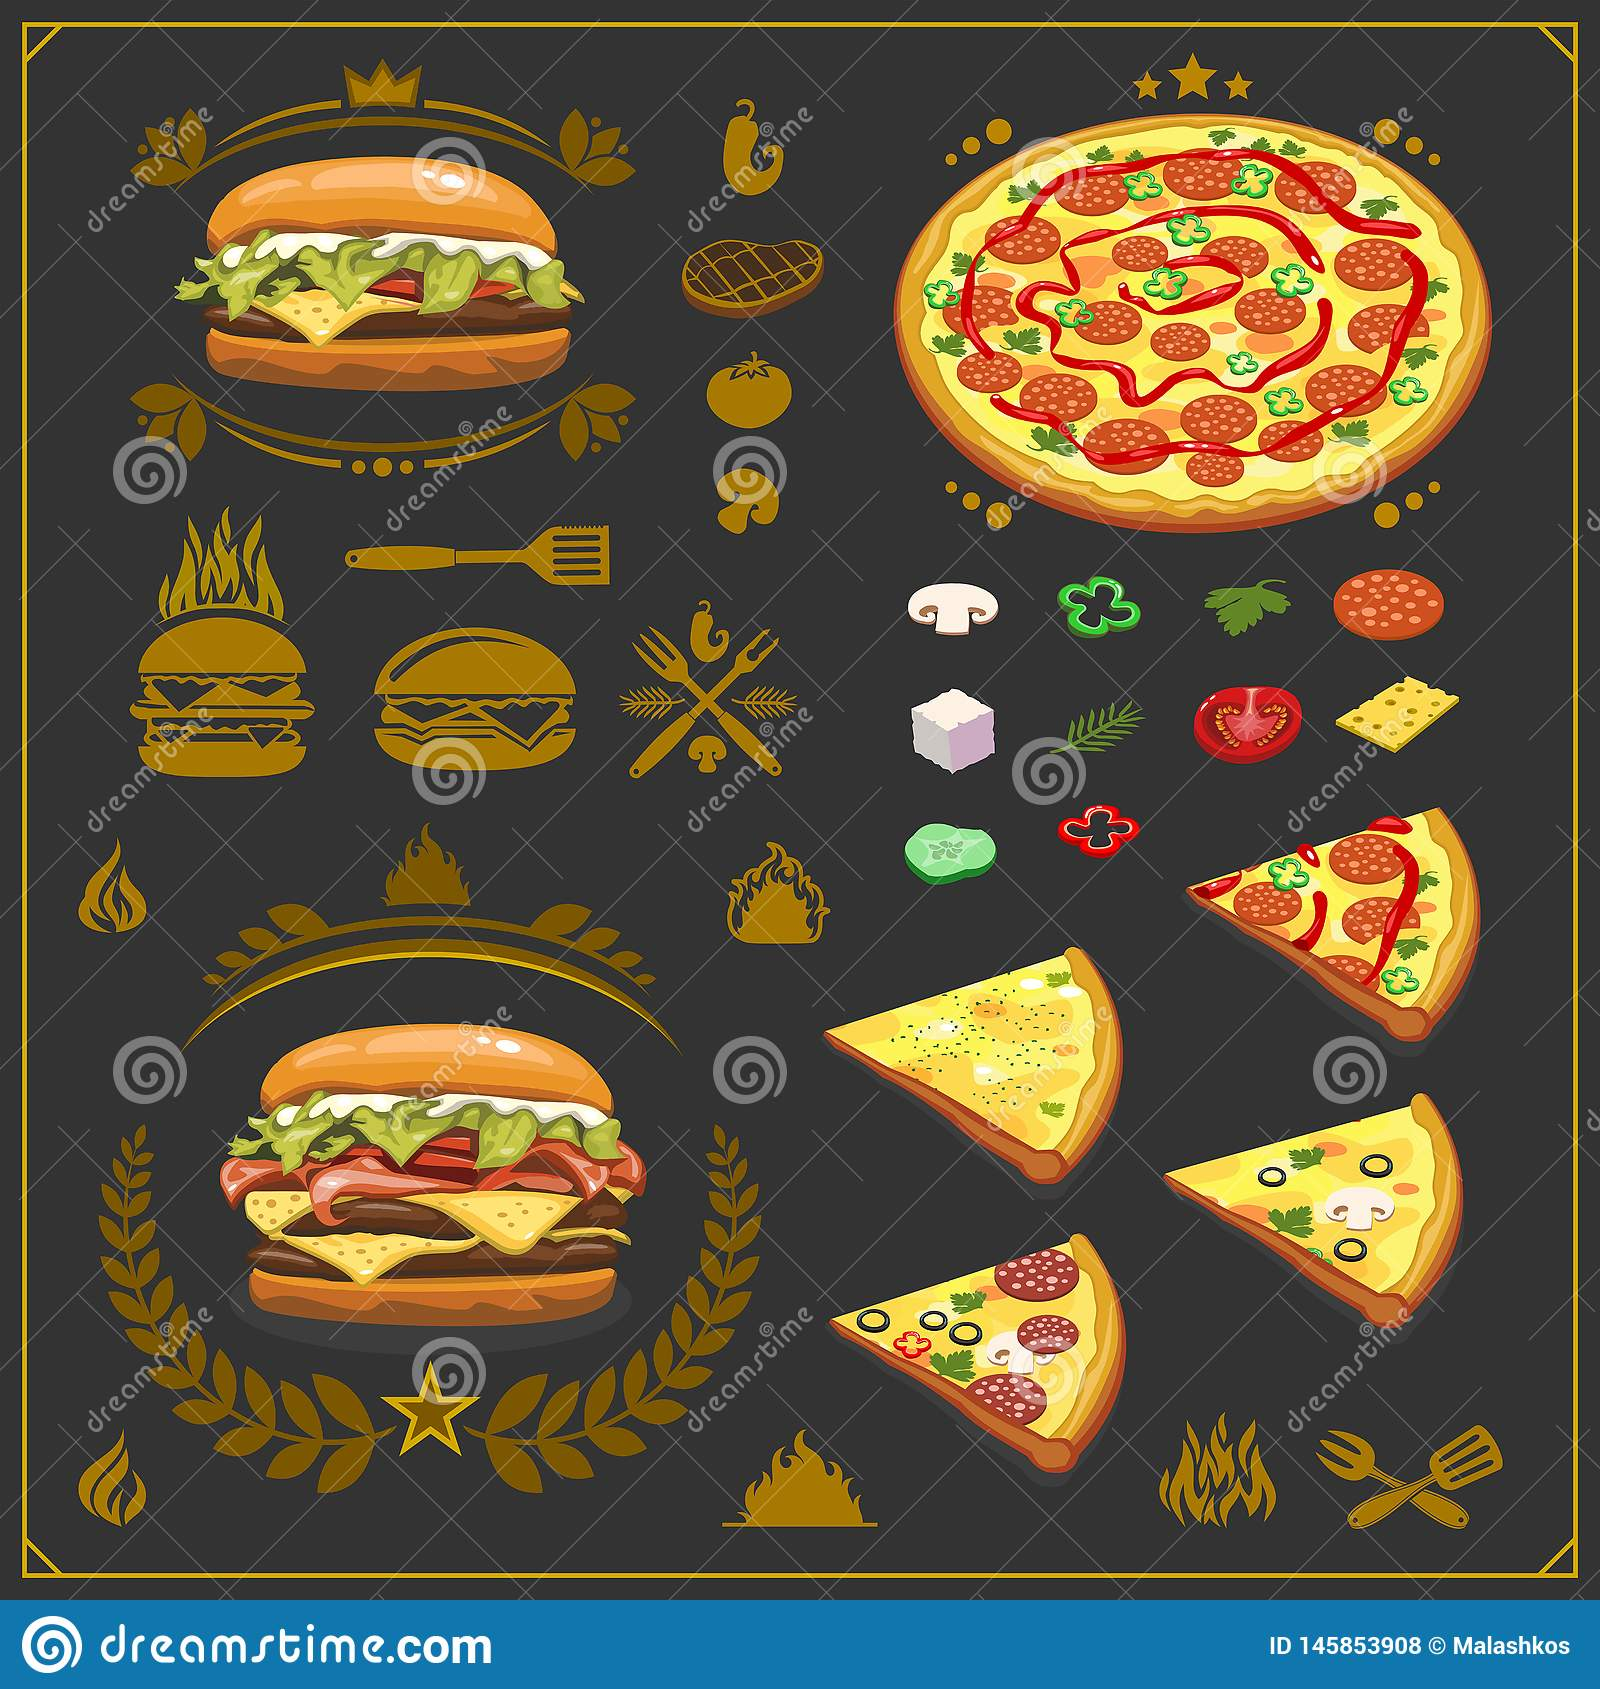 Burger Pizza And Bbq Emblems Labels And Design Elements Fast Food Restaurant Logo Design Template Stock Vector Illustration Of House Pizza 145853908